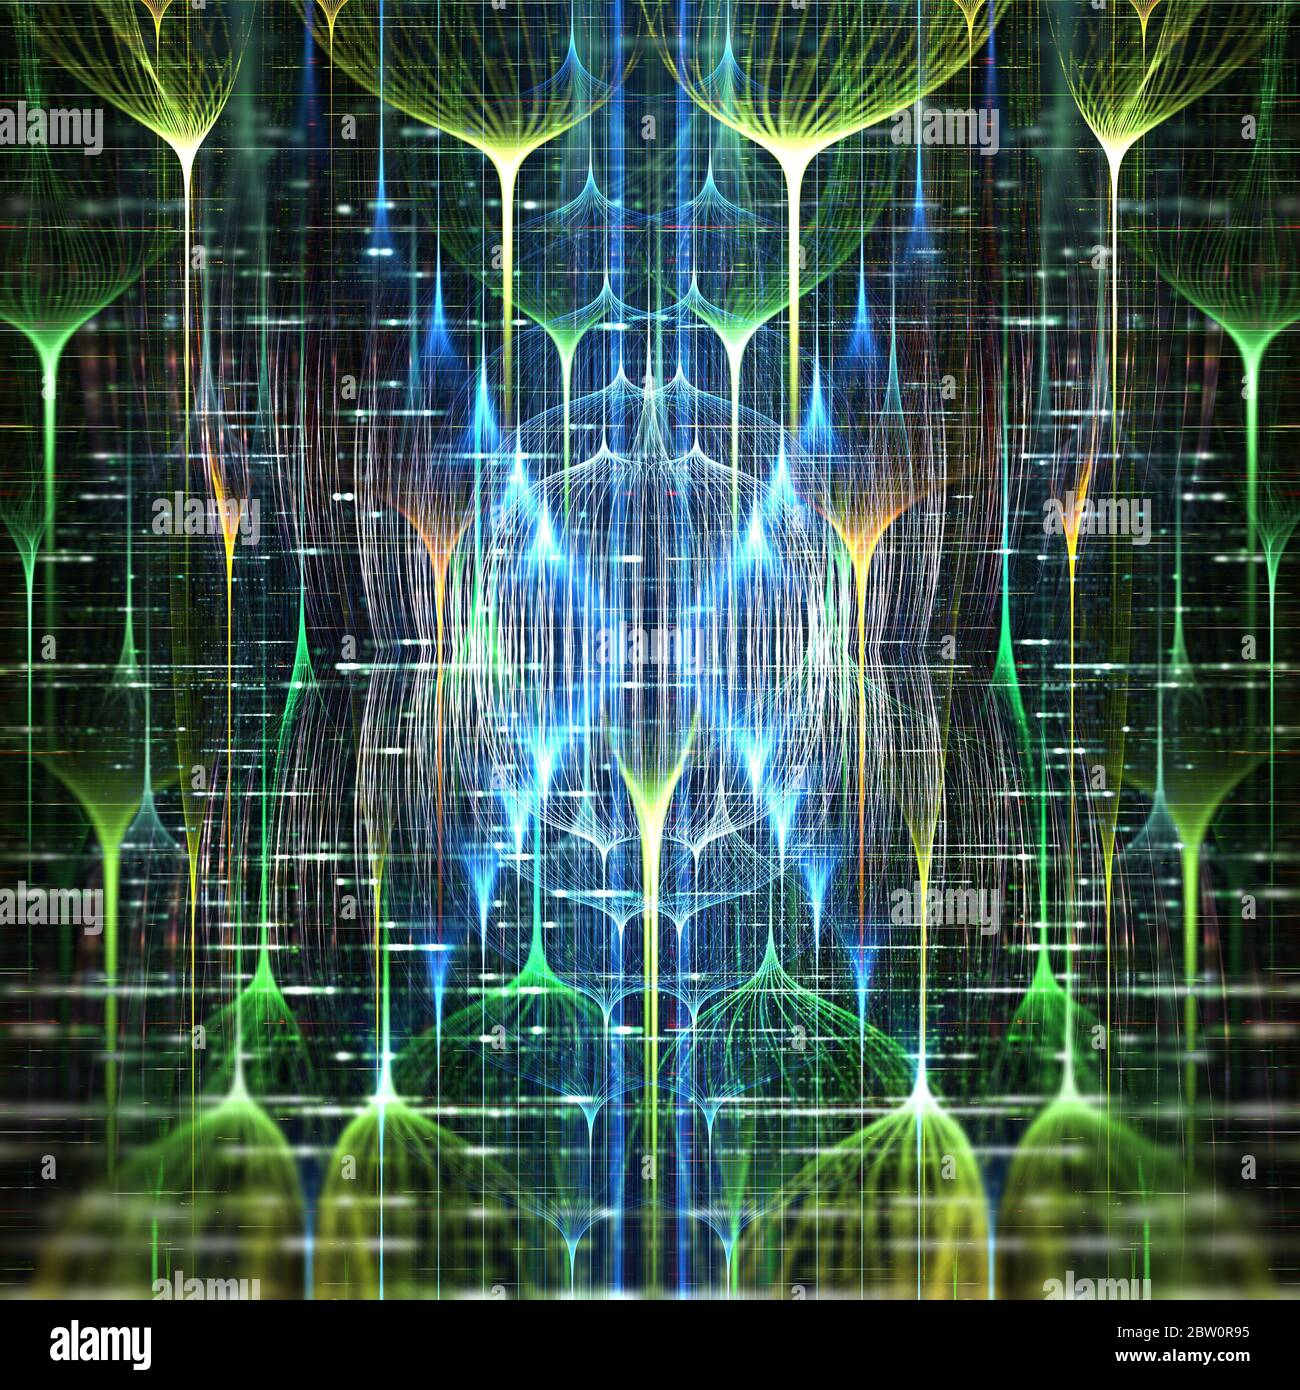 Field of futuristic neural networks, deep learning concept Stock Photo